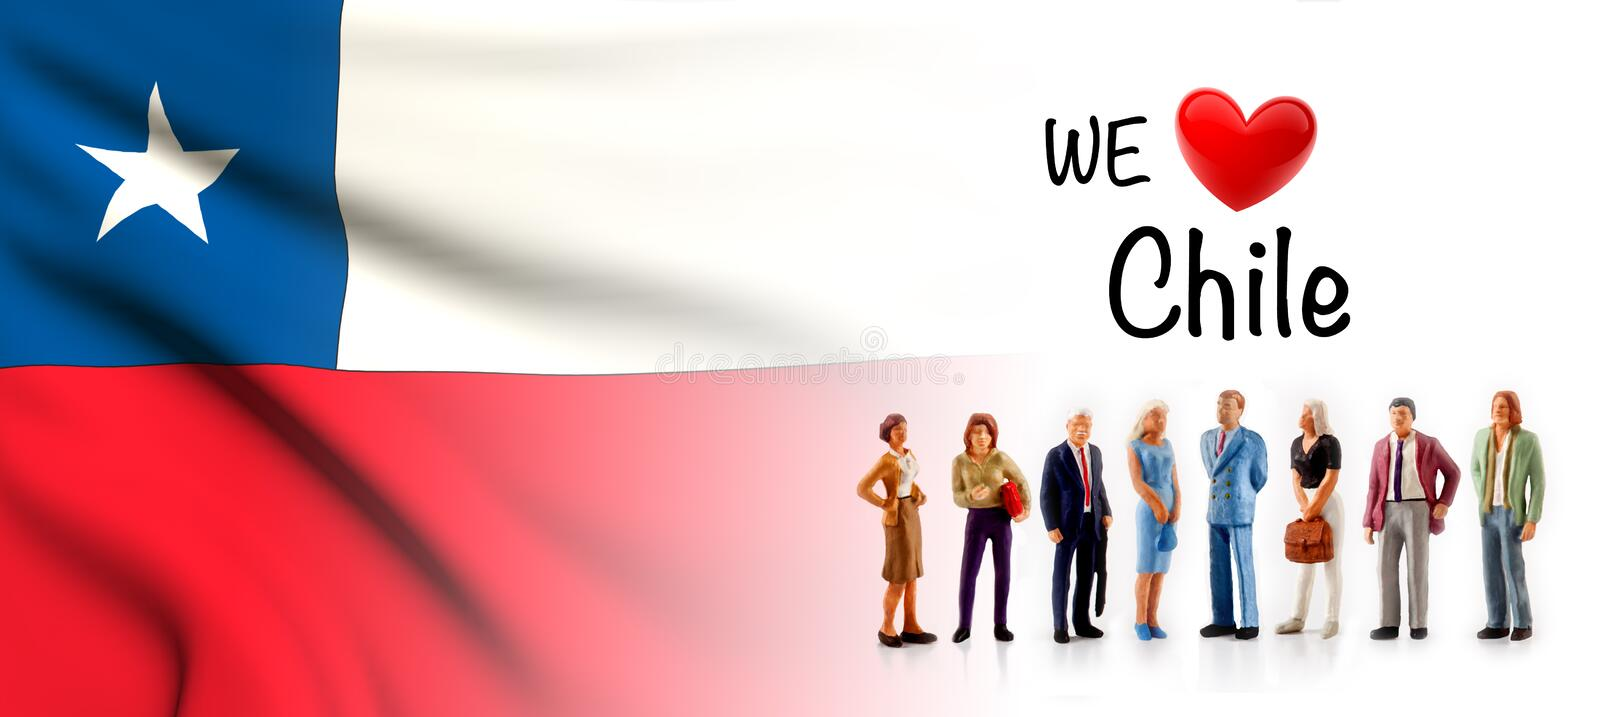 We love Chile, A group of people pose next to the Chilean flag vector illustration